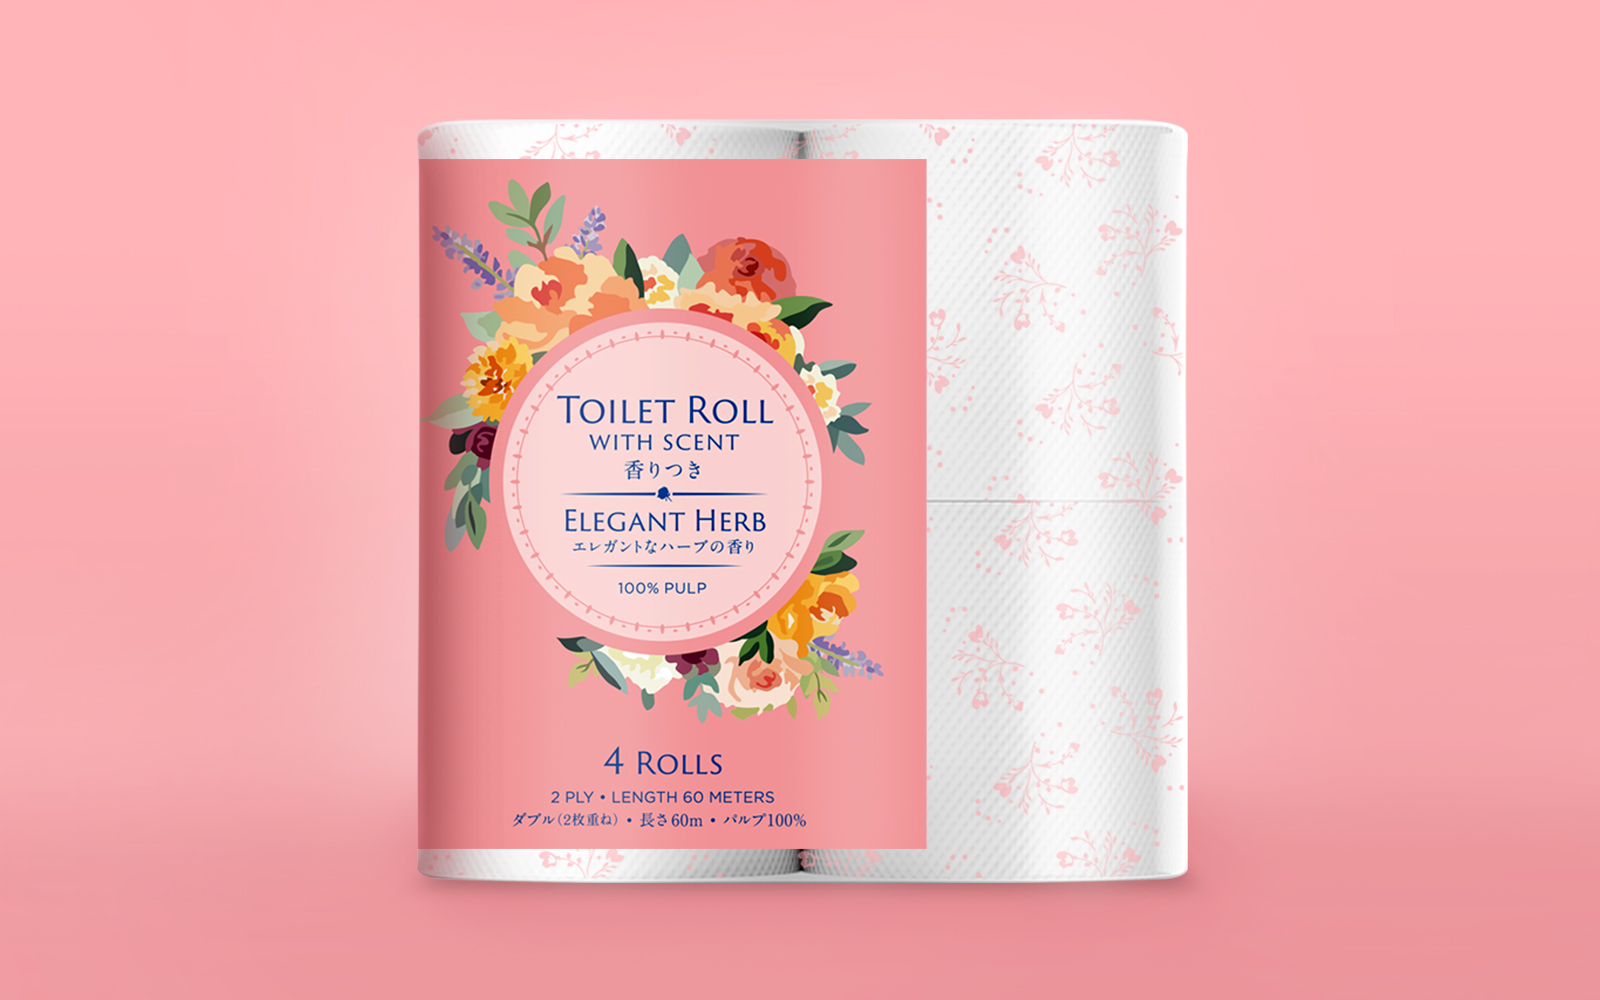 This image is of a pack of four toilet rolls. The packaging design is floral and feminine featuring roses and leaves of a pastel pink background.